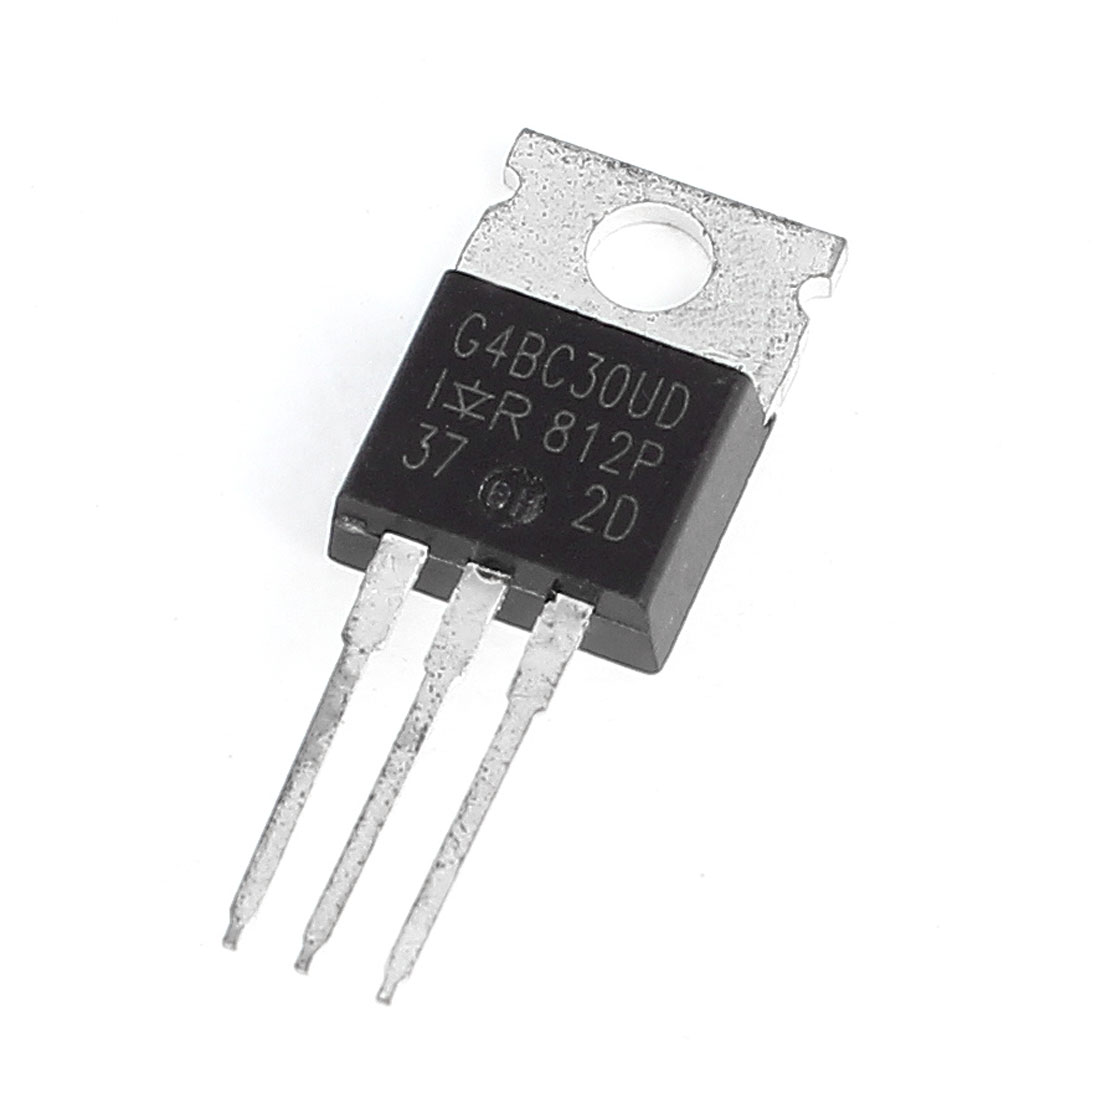 IRG4BC30UD 600V 23A 100W 3 Pin Terminals TO-220 Package IGBT Insulated Gate Transistor